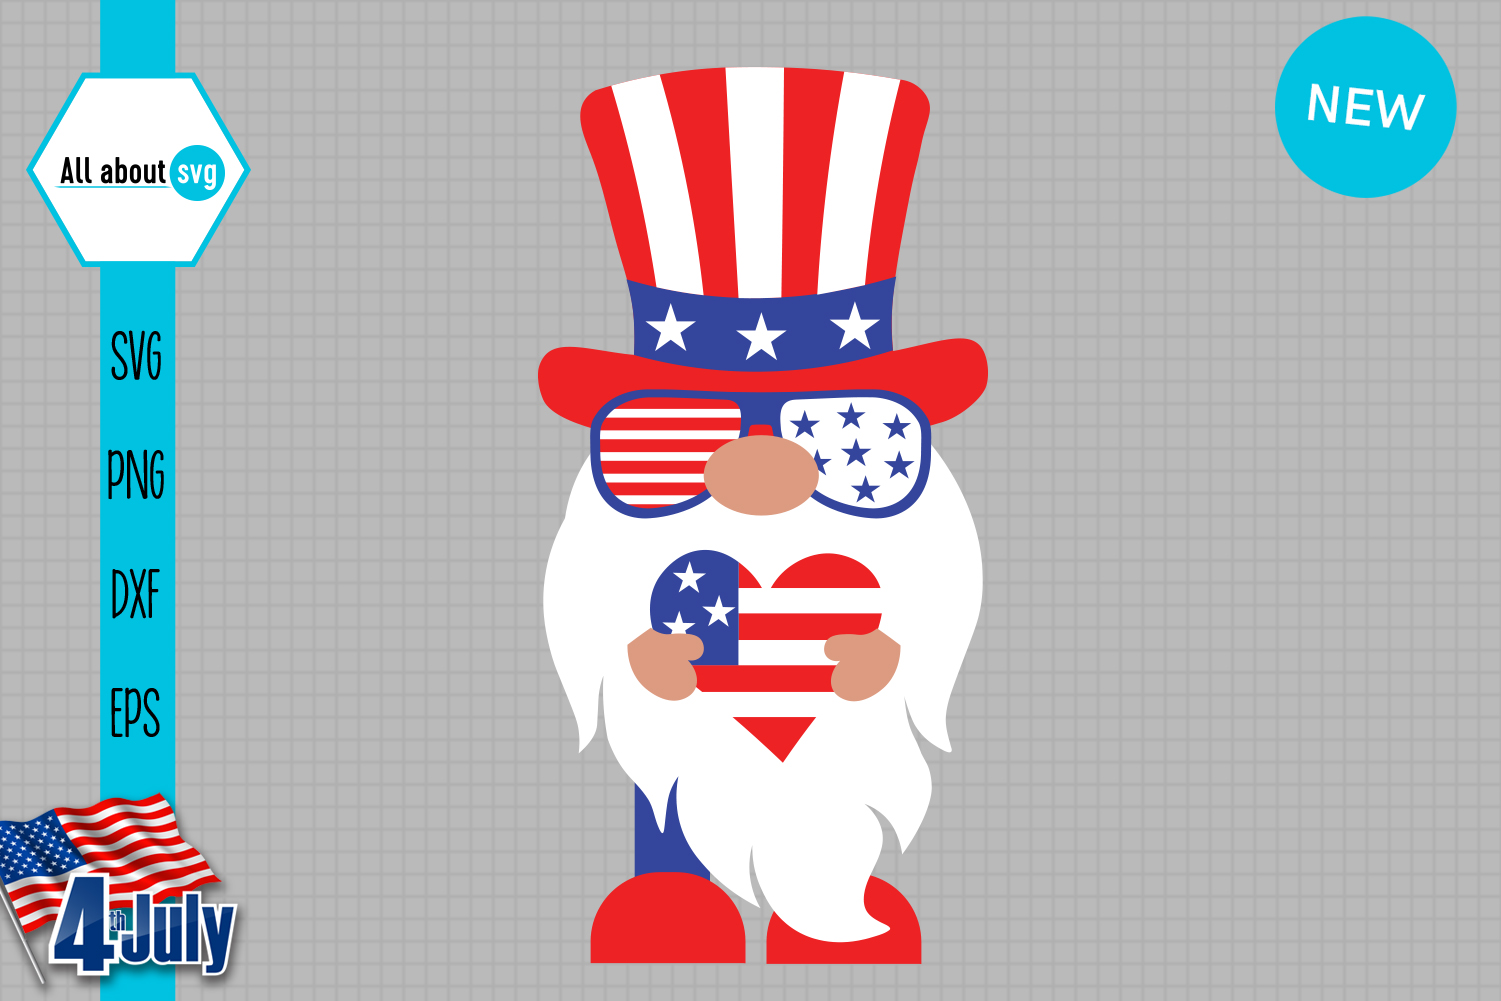 Download Free Patriotic Gnome Graphic By All About Svg Creative Fabrica for Cricut Explore, Silhouette and other cutting machines.